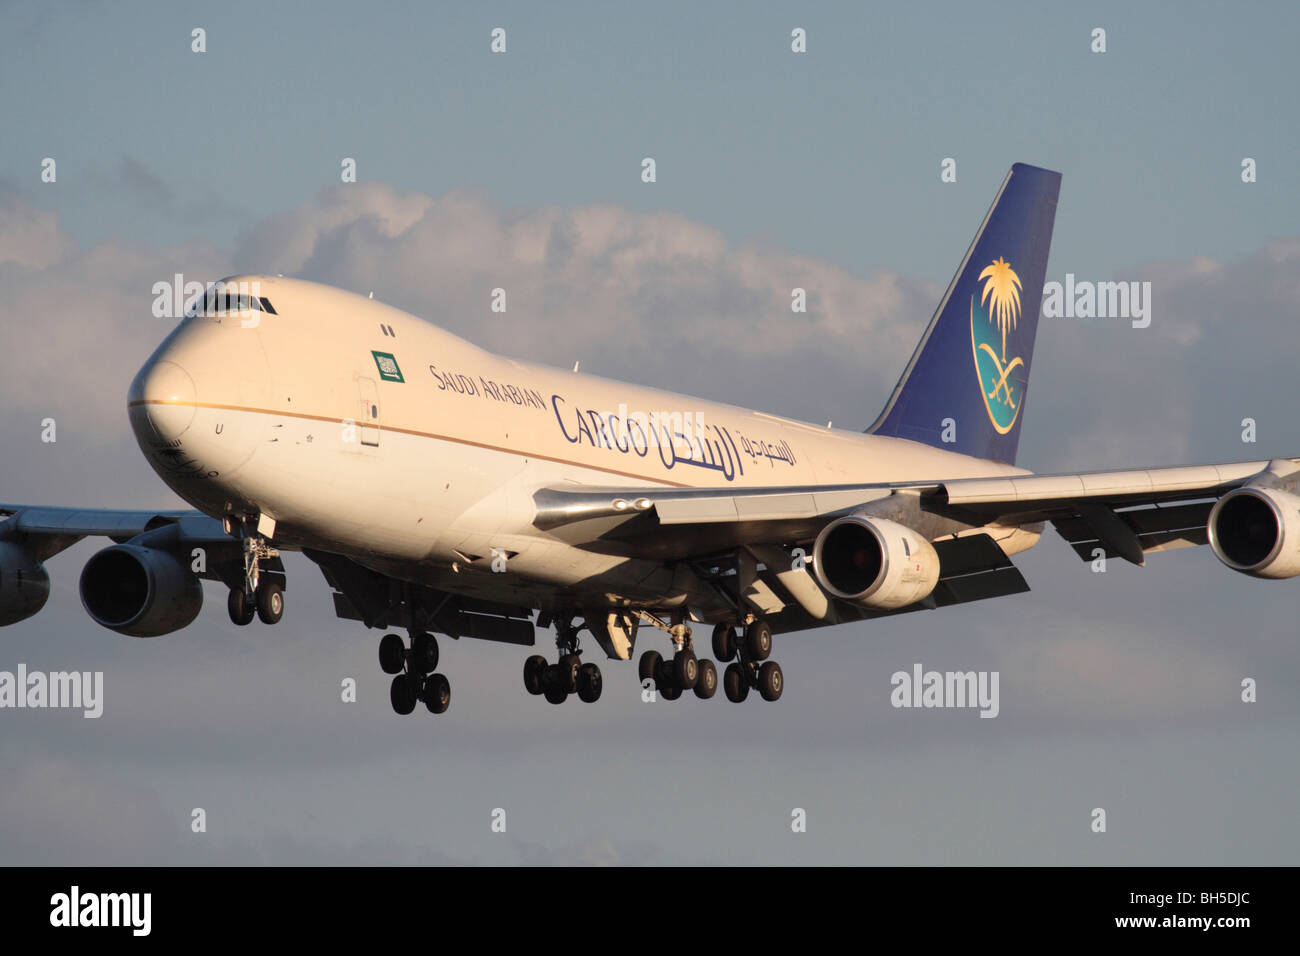 Saudi Arabian Cargo Boeing 747-200F four engine heavy transport aircraft, an adaptation of the jumbo jet, on approach. - Stock Image